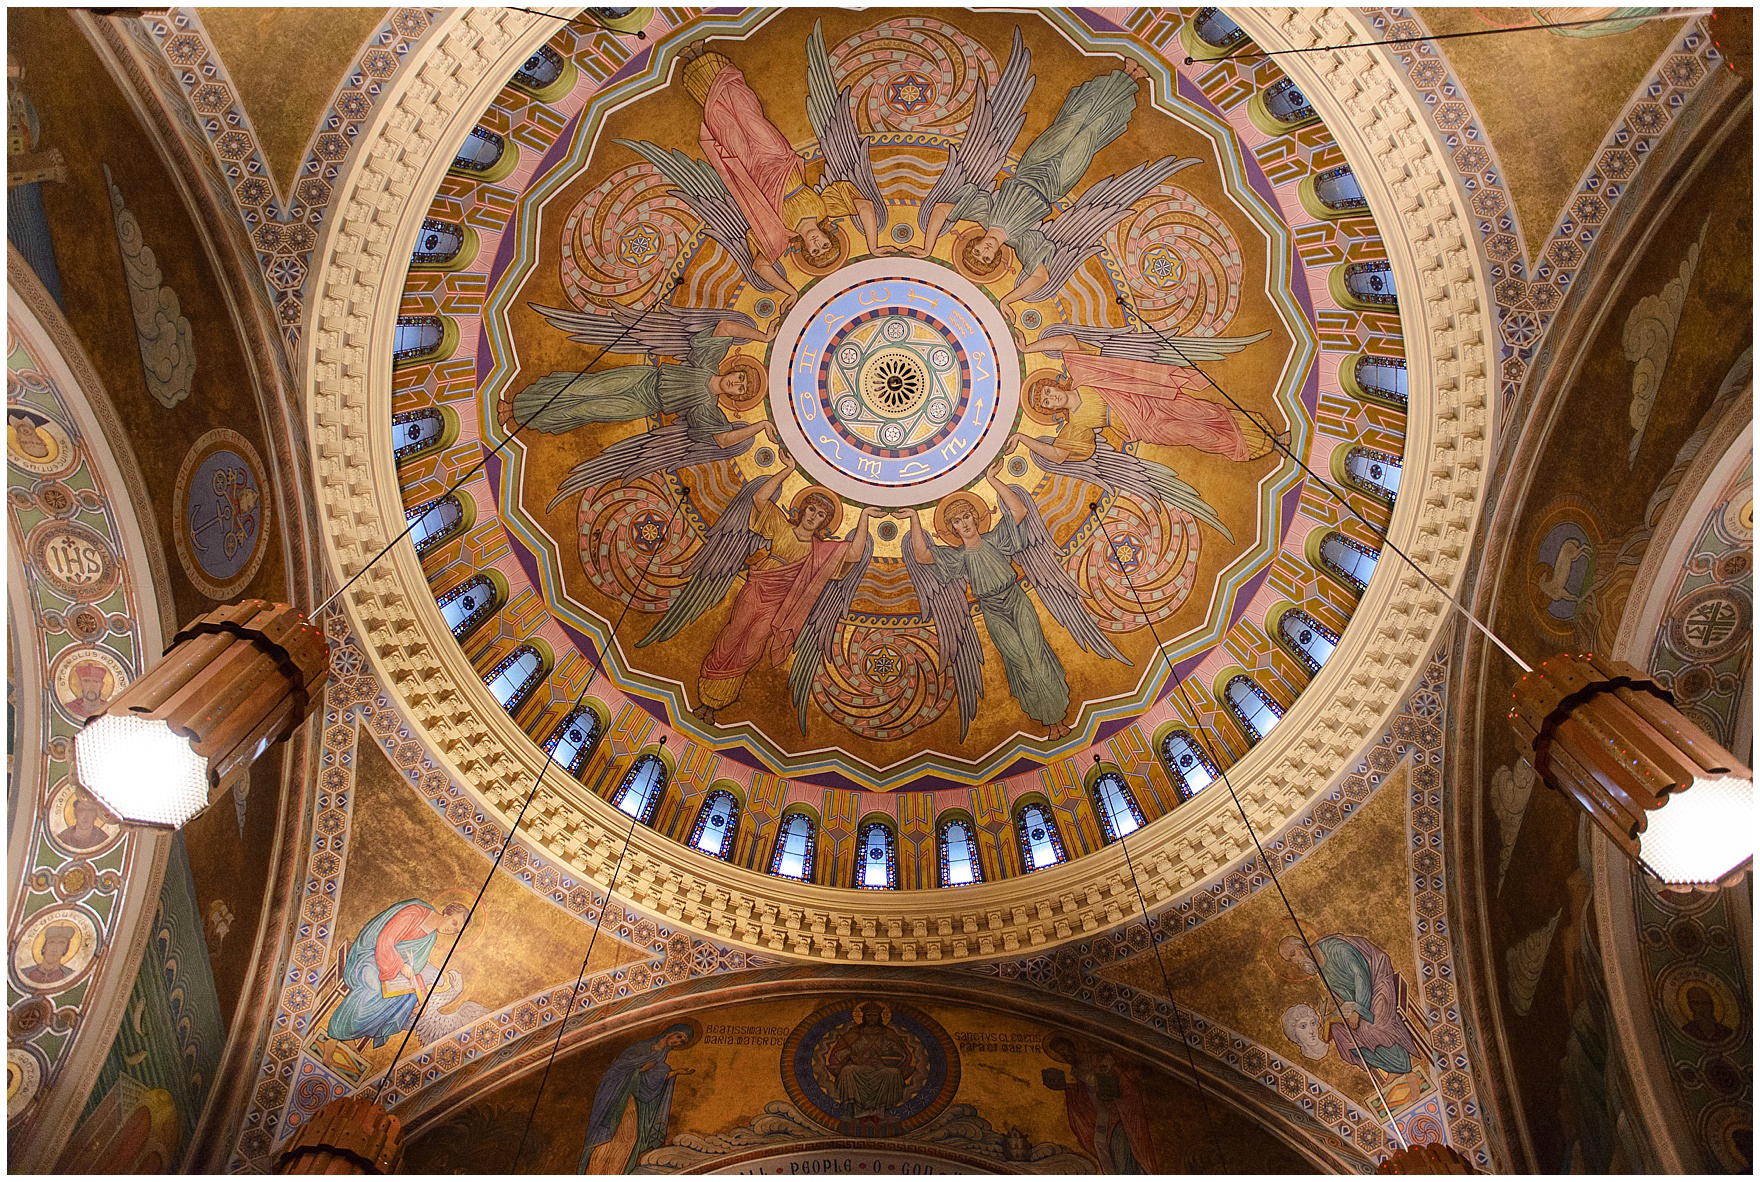 The beautiful and ornate ceiling of the church during a St. Clement Germania Place Chicago wedding.